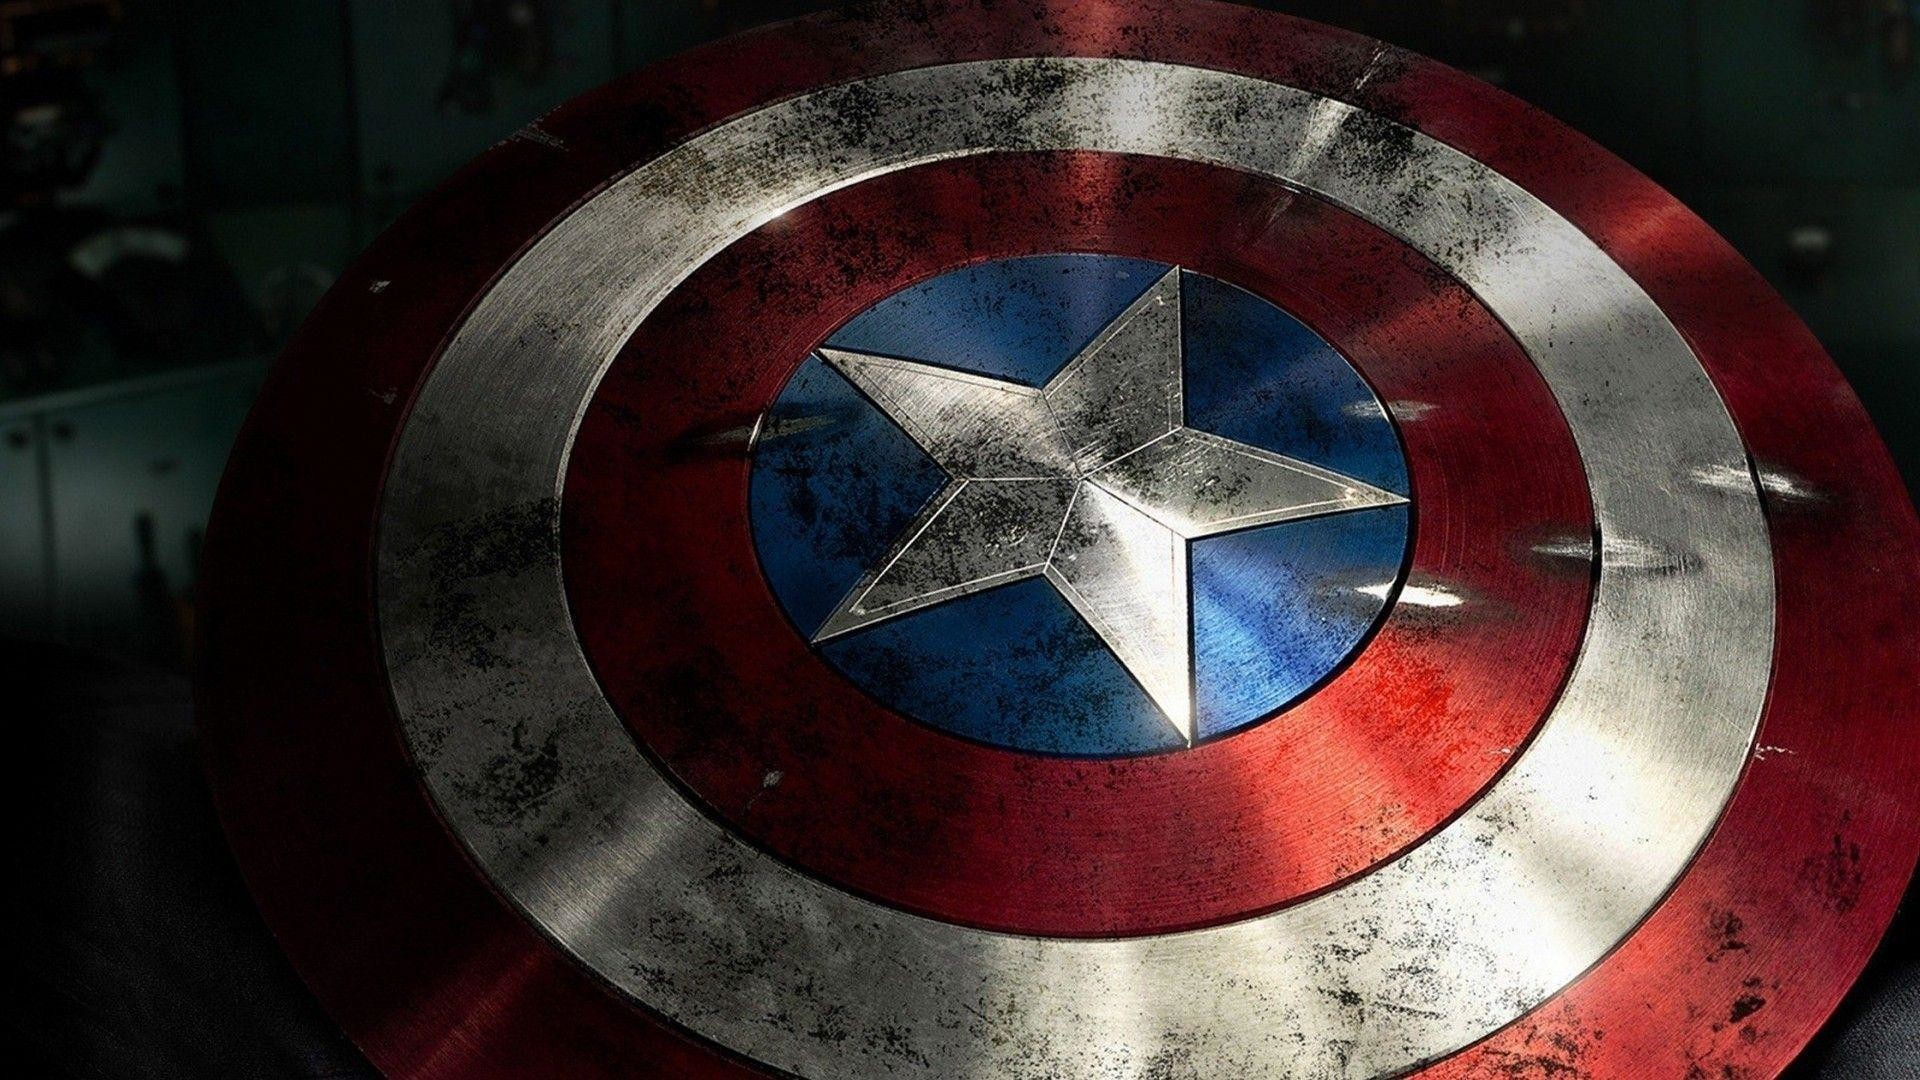 1920x1080 Superhero wallpaper: Vibranium by Ninja-of-Athens on DeviantArt